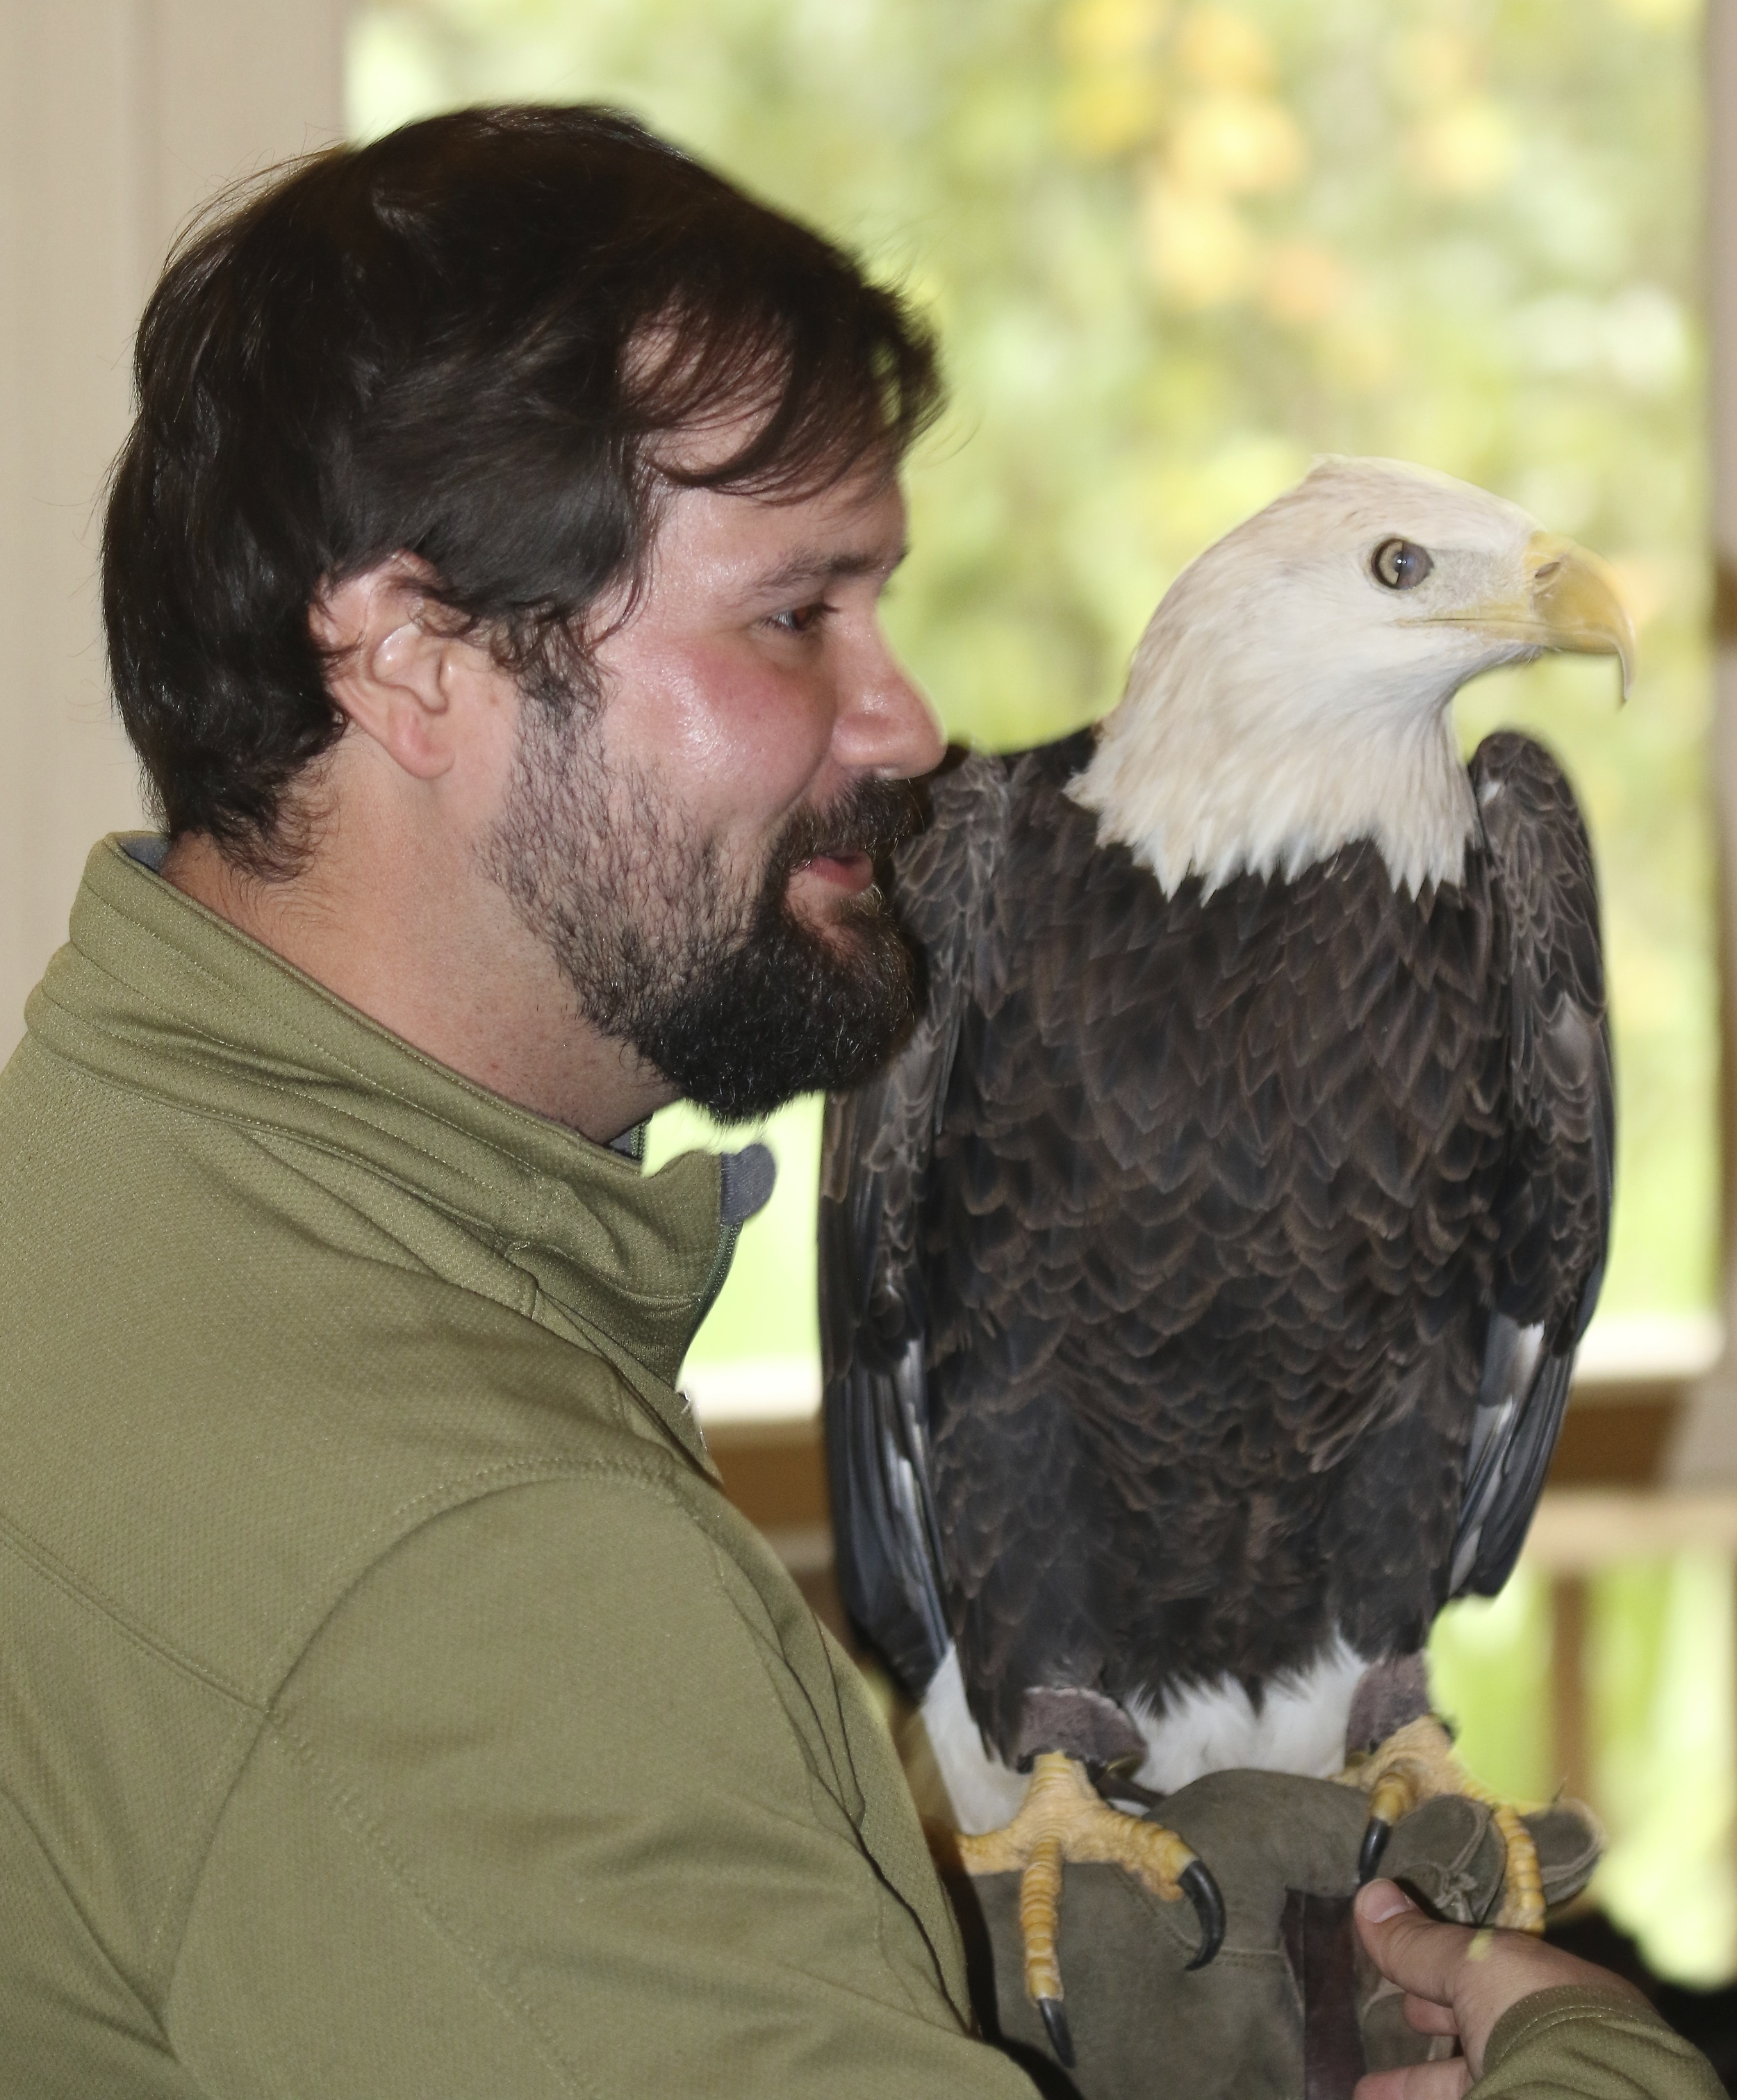 Meet Matt Smith (left) and Francis, a male Bald Eagle at the Audubon Center for Birds of Prey. Note the large talons of the feet on Francis.